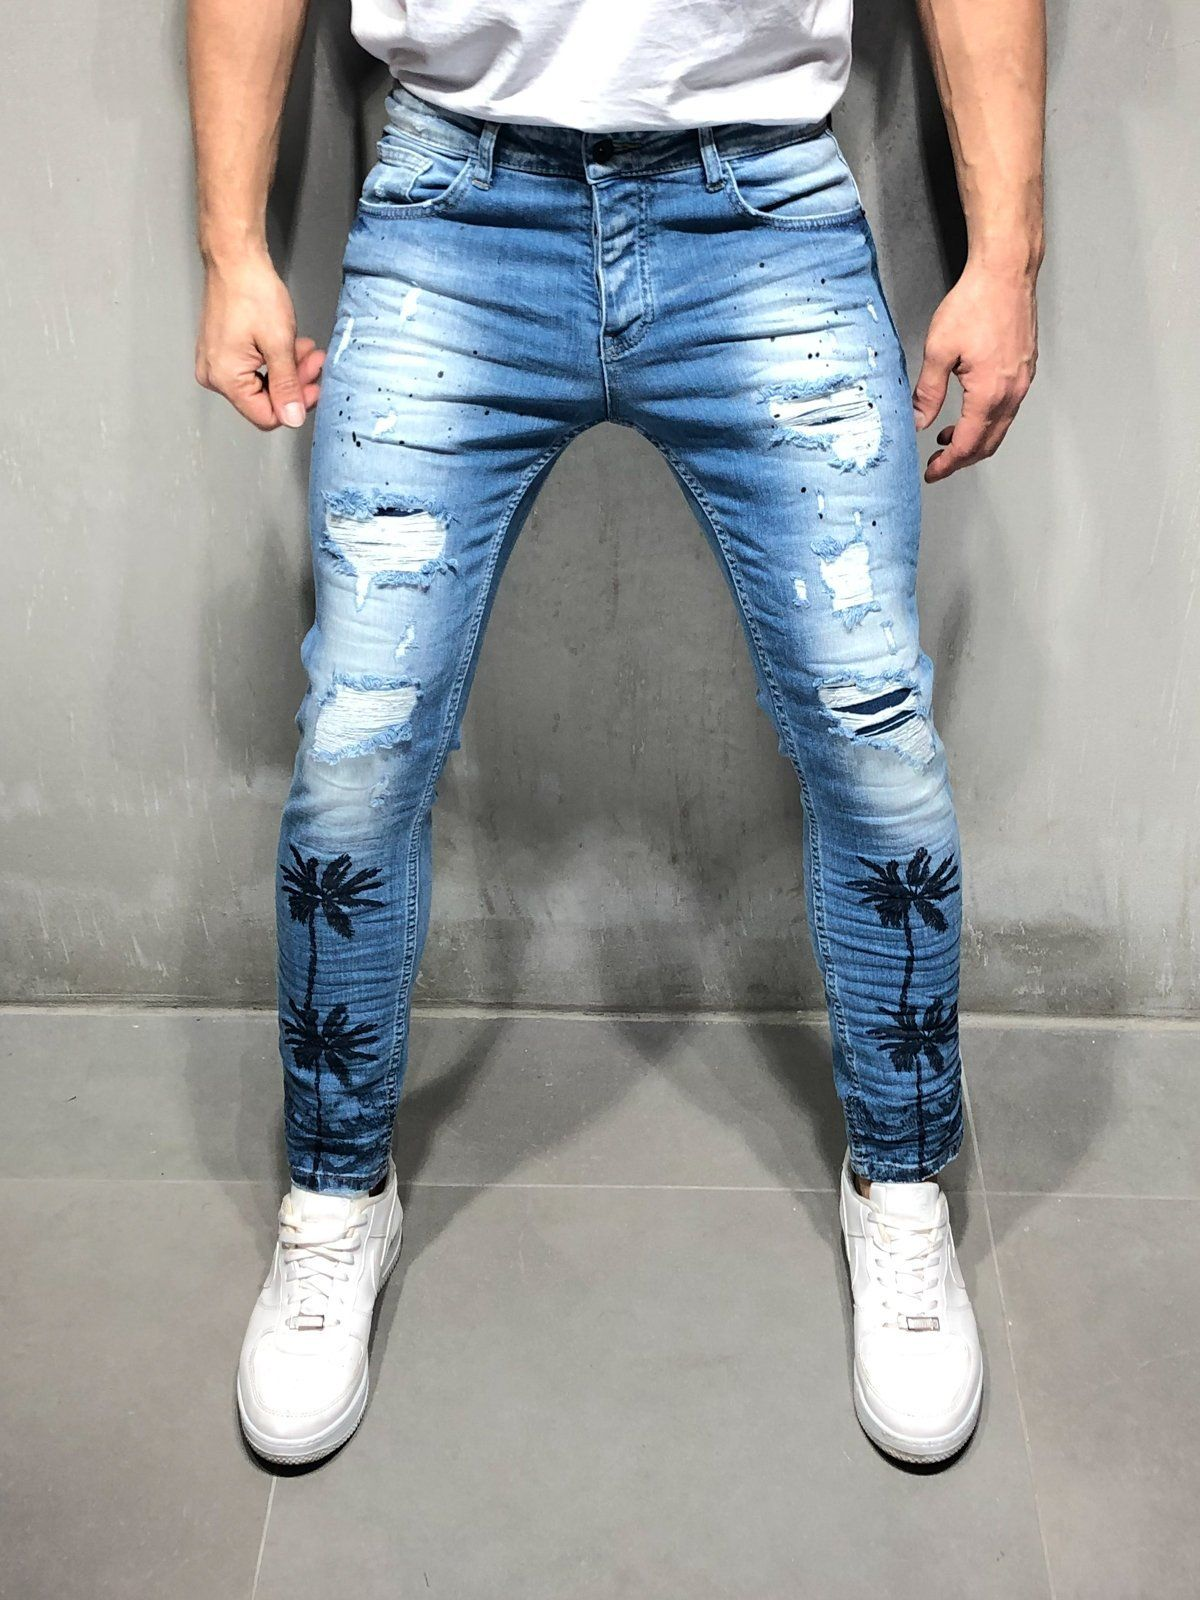 557005832ad Random Ripped Jeans Palm Tree Print Short Outfits, Cargo Jeans, Denim Jeans  Men,